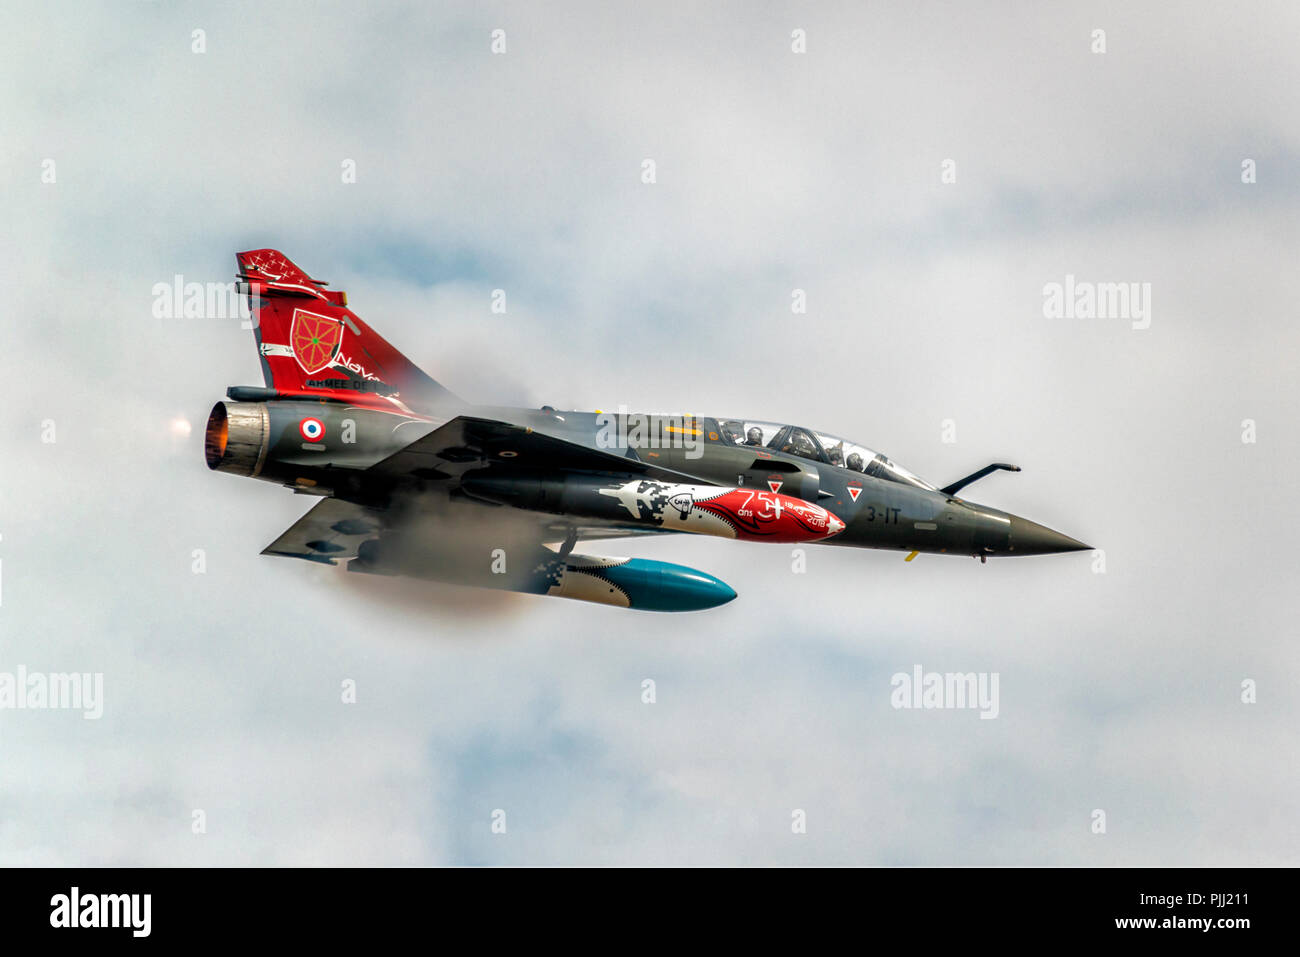 Dassault Mirage 2000D, French Air Force, RIAT, RAF Fairford 2018 Stock Photo